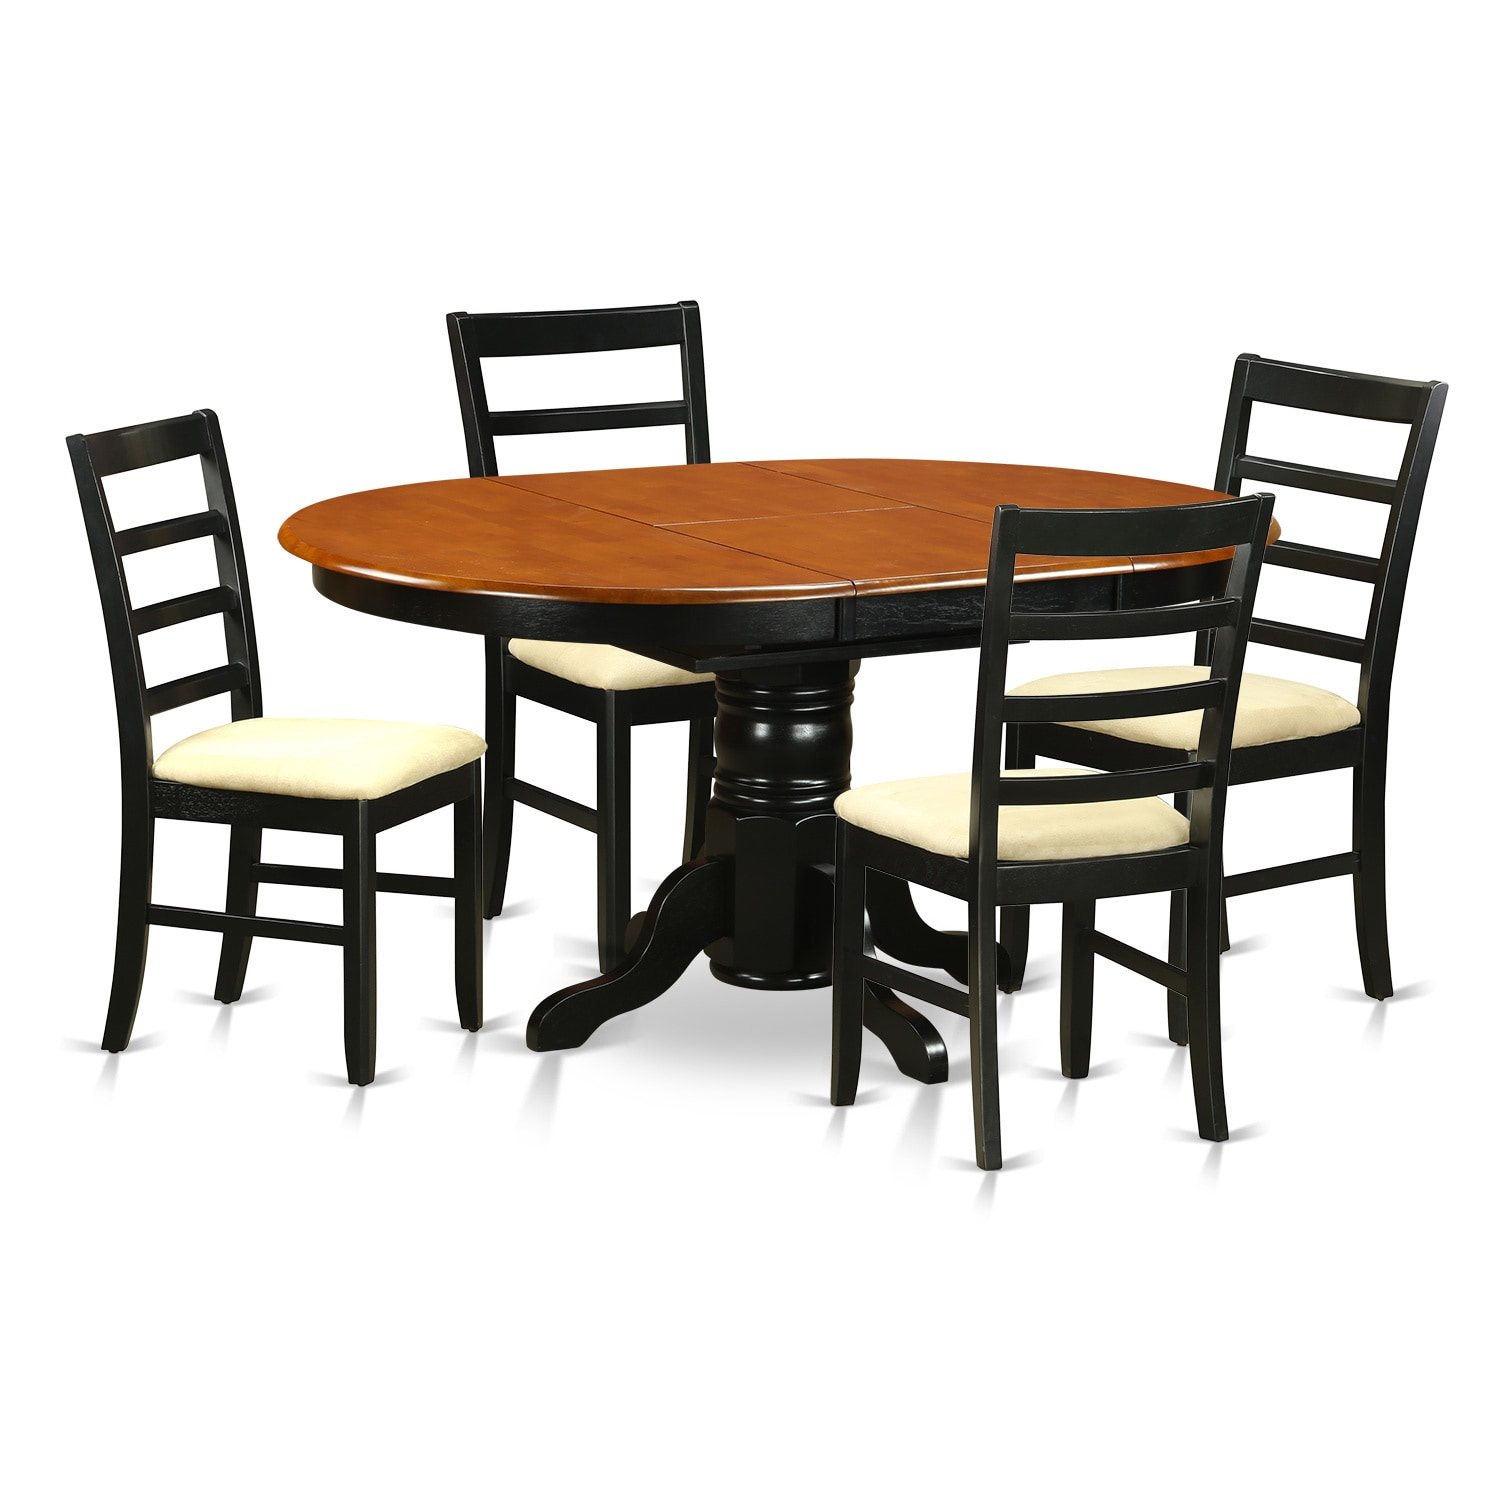 Black Dining Room Table And Chairs Avon Cherry And Black Finish Rubberwood 5 Piece Dining Room Set With Dining Table And 4 Chairs